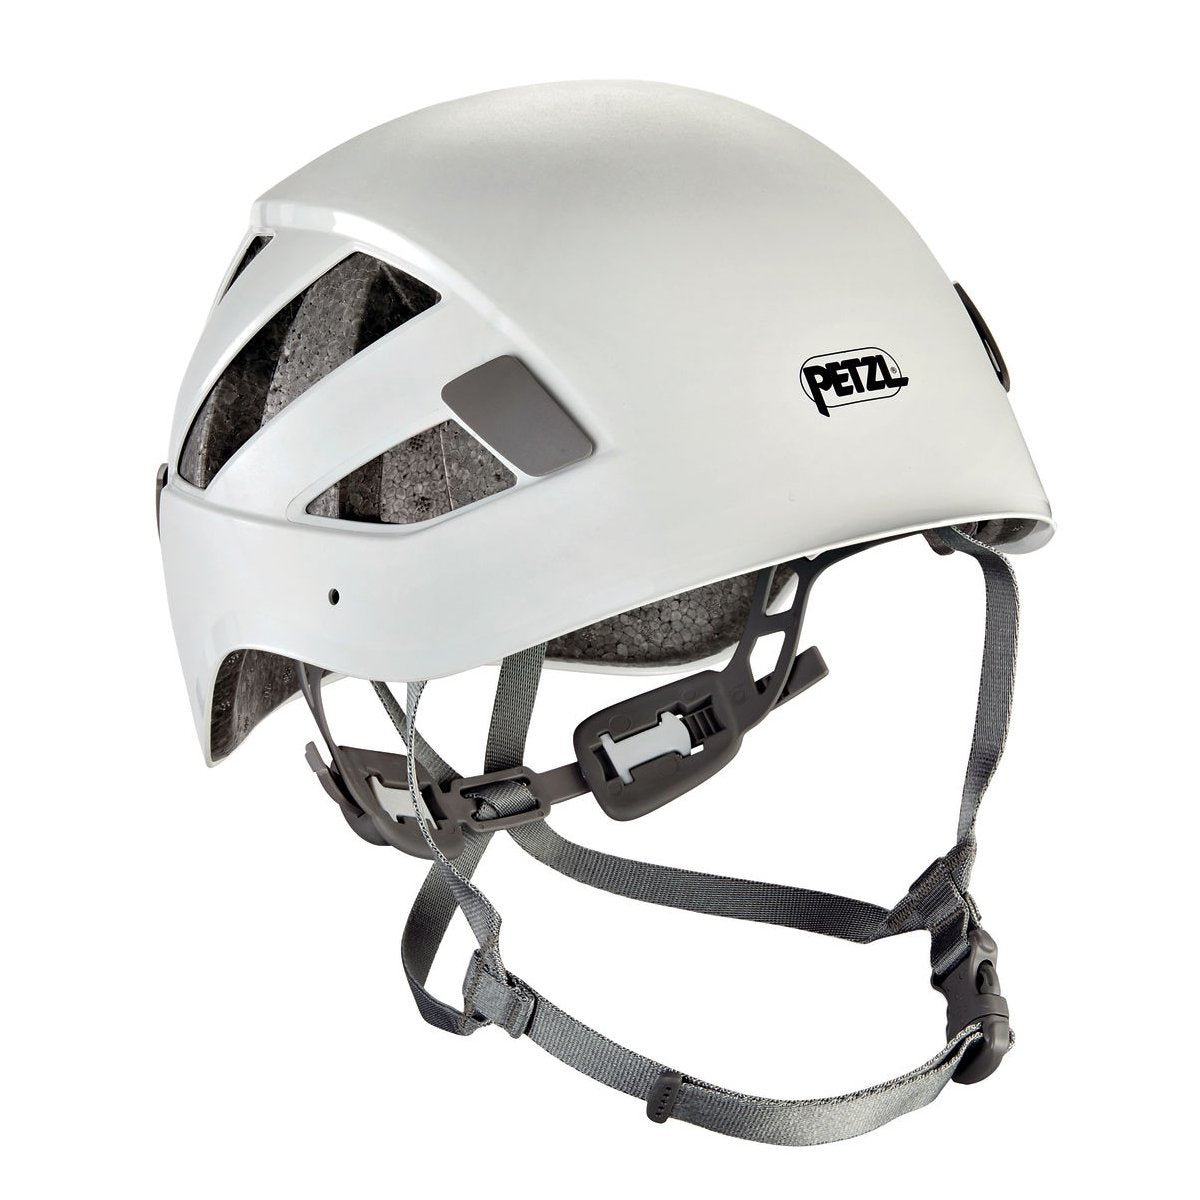 Petzl Boreo climbing helmet, front/side view in white colour with grey chin straps